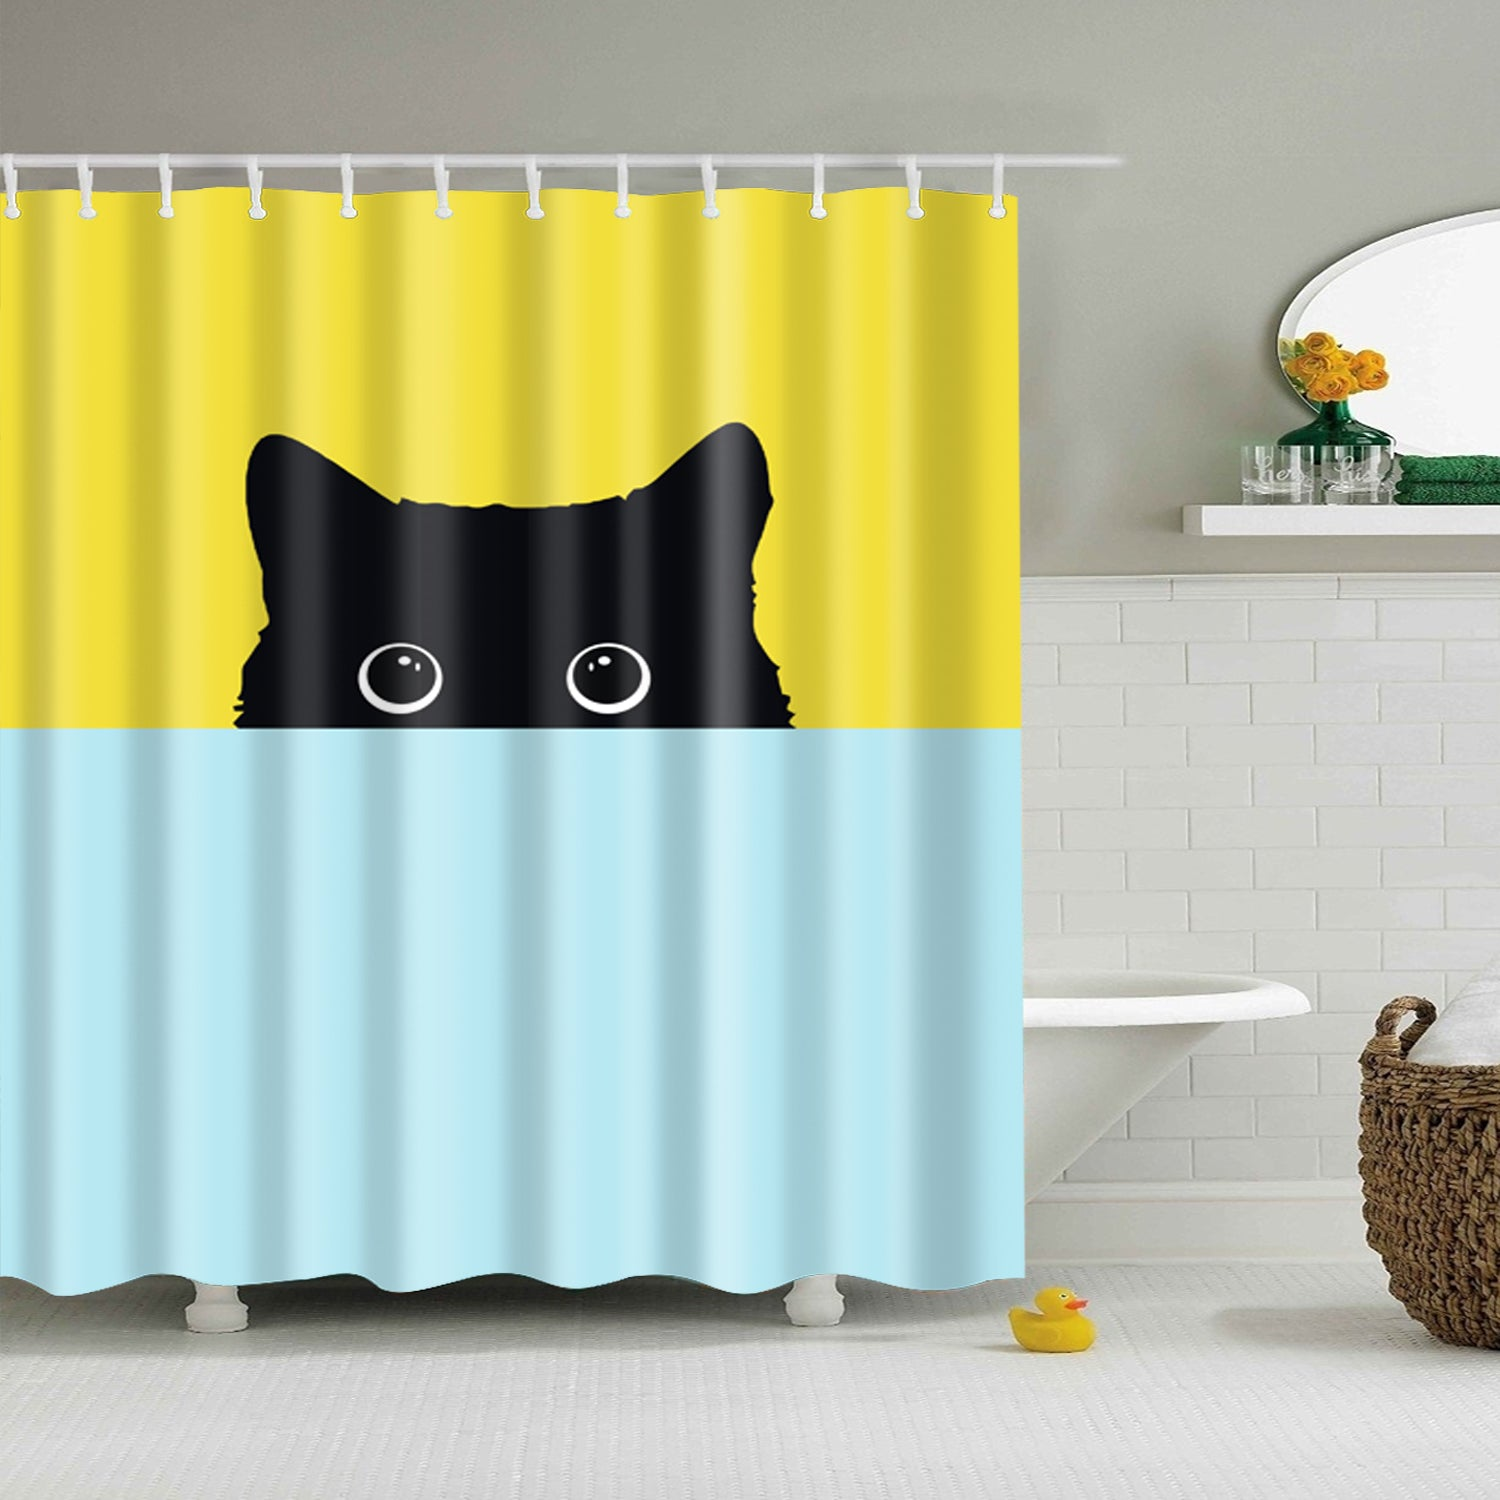 Yellow and blue With Black Cat Shower Curtain